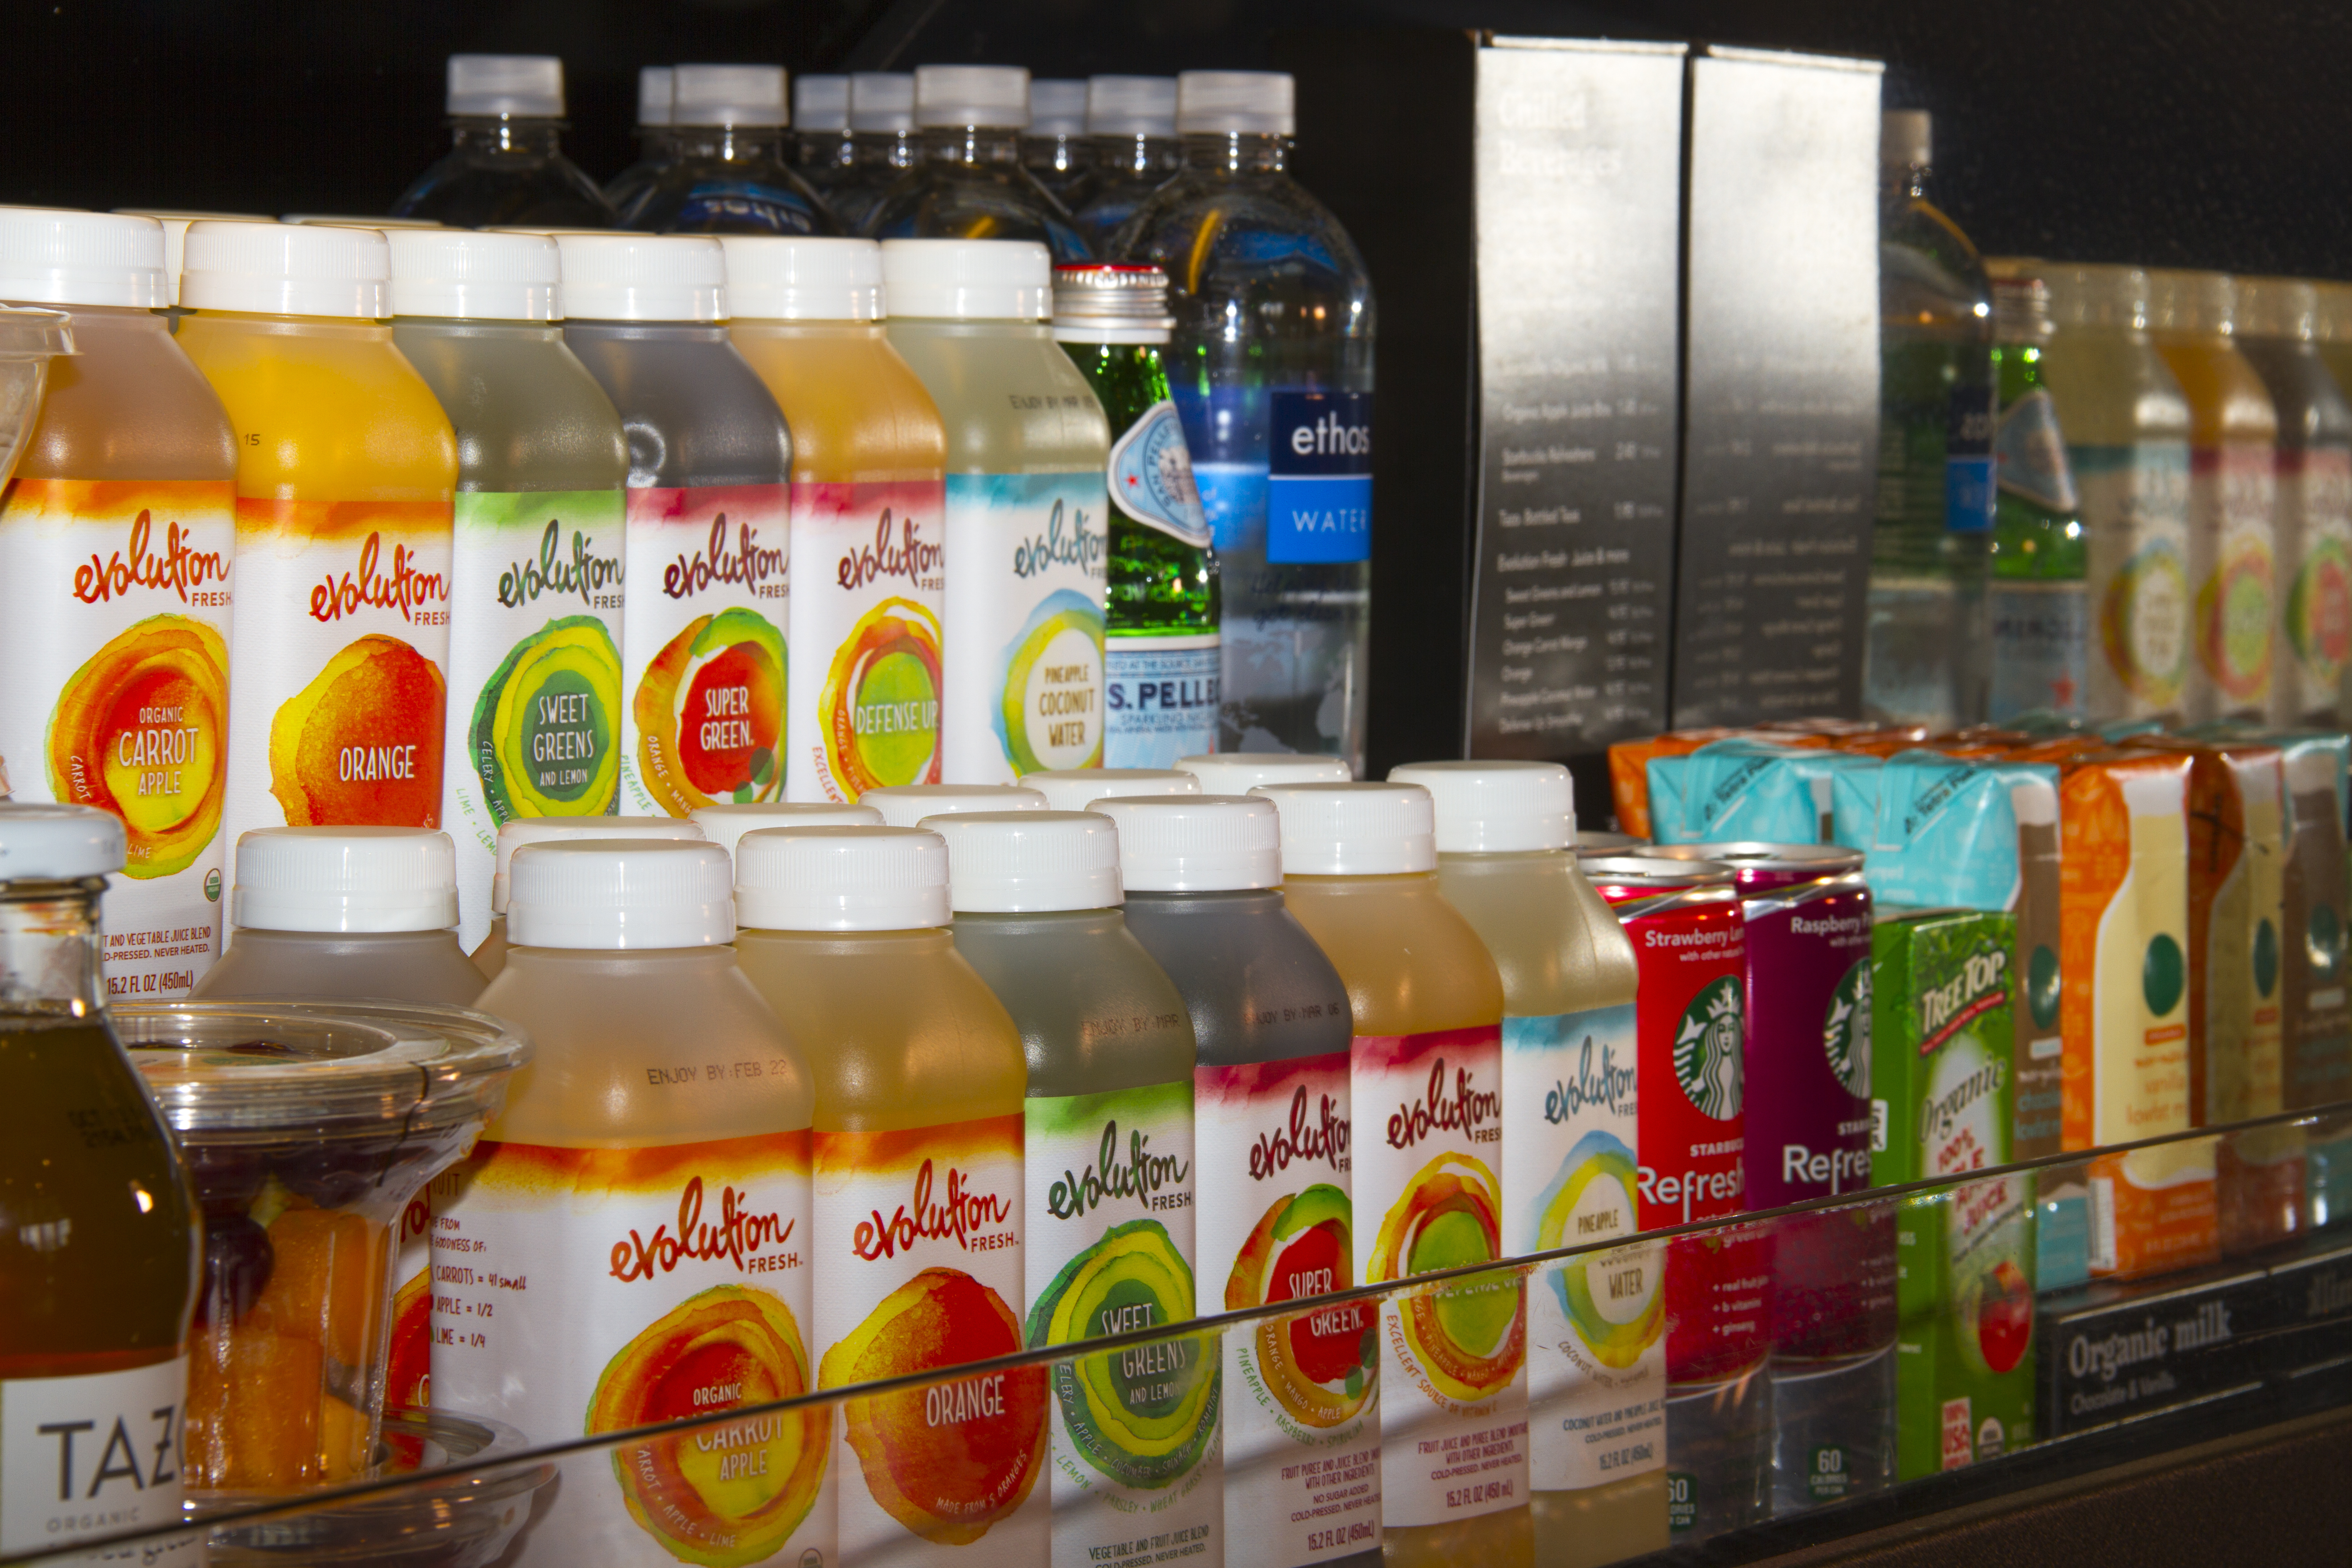 Evolution Fresh Brings More Cold-Pressed Juice to the U.S. Midwest with Availability in Chicagoland Starbucks Stores (Photo: Business Wire)